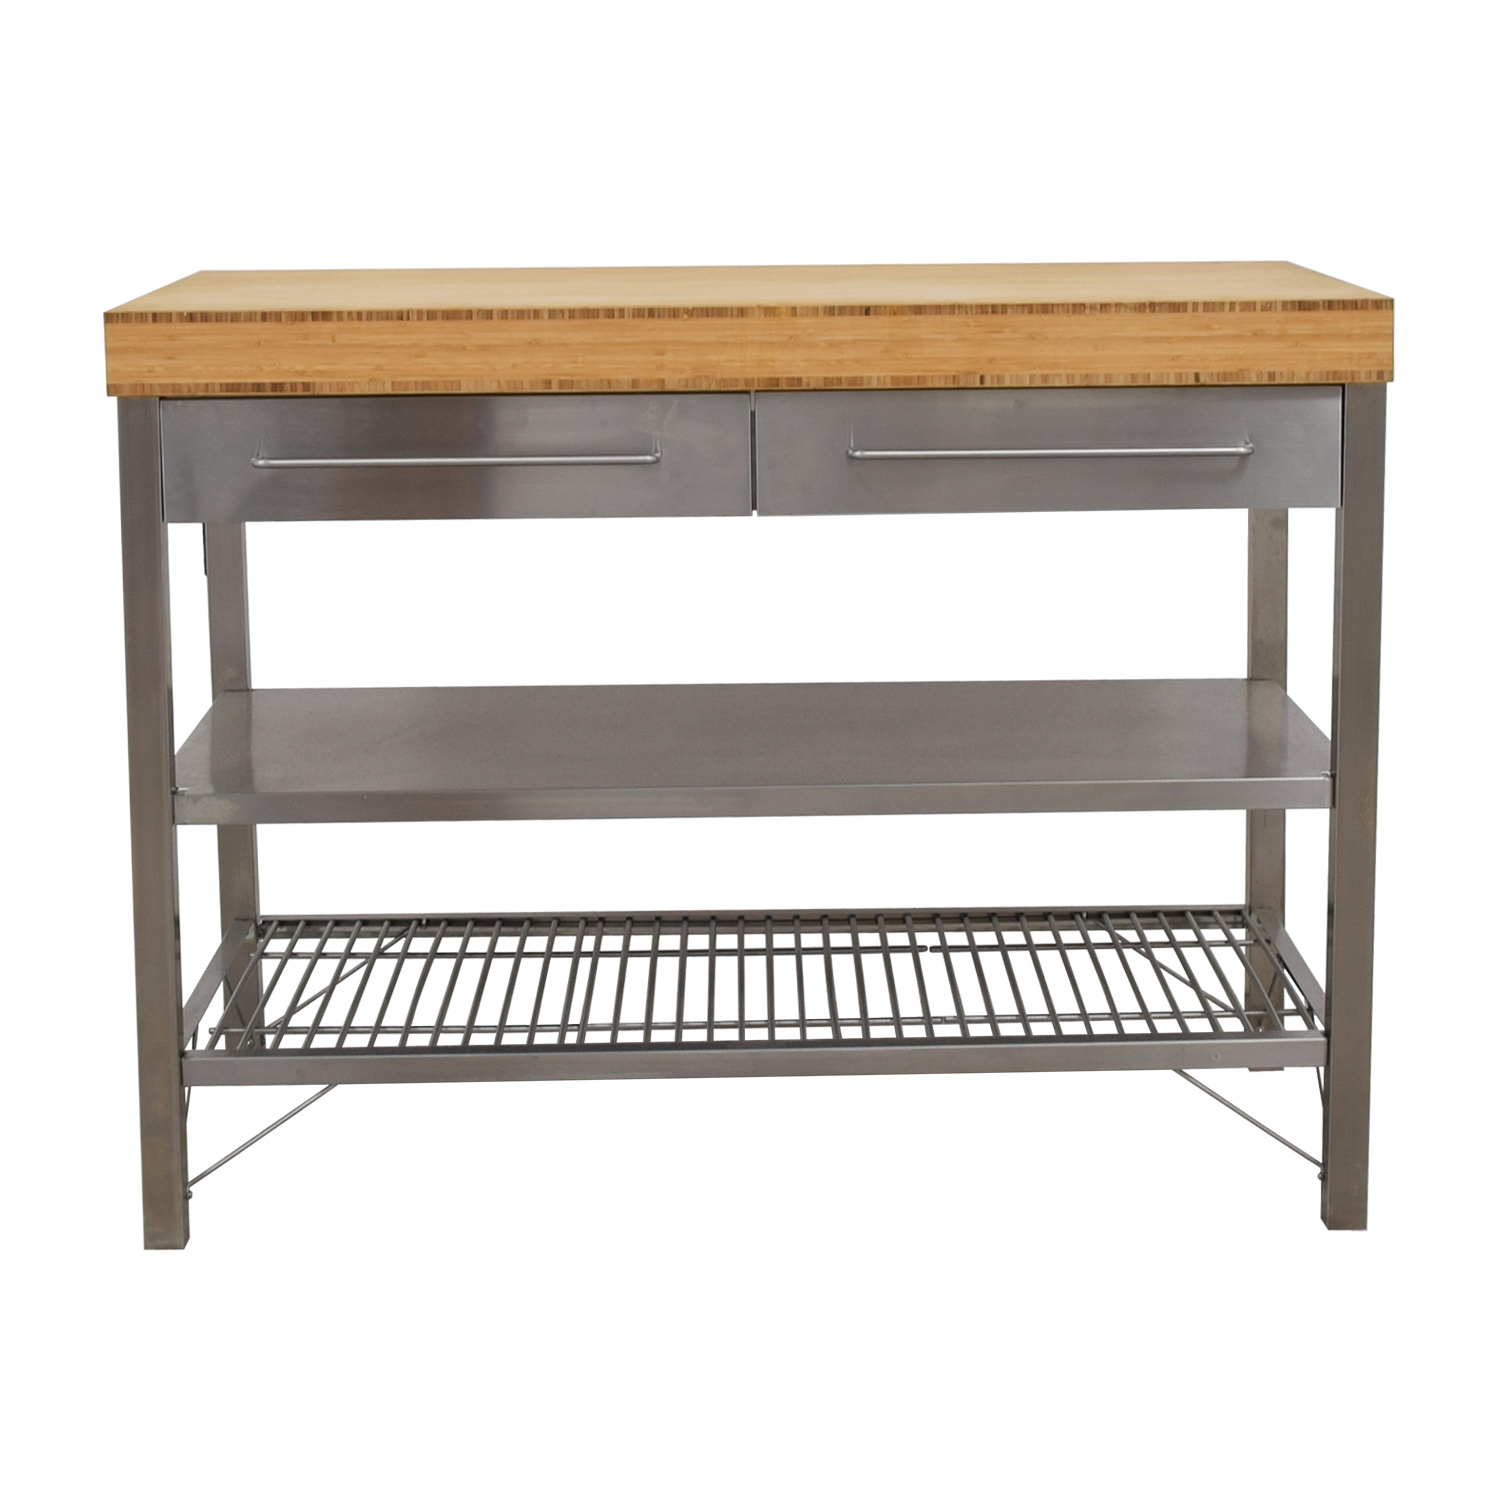 Ikea Kitchen Work Bench Utility Tables